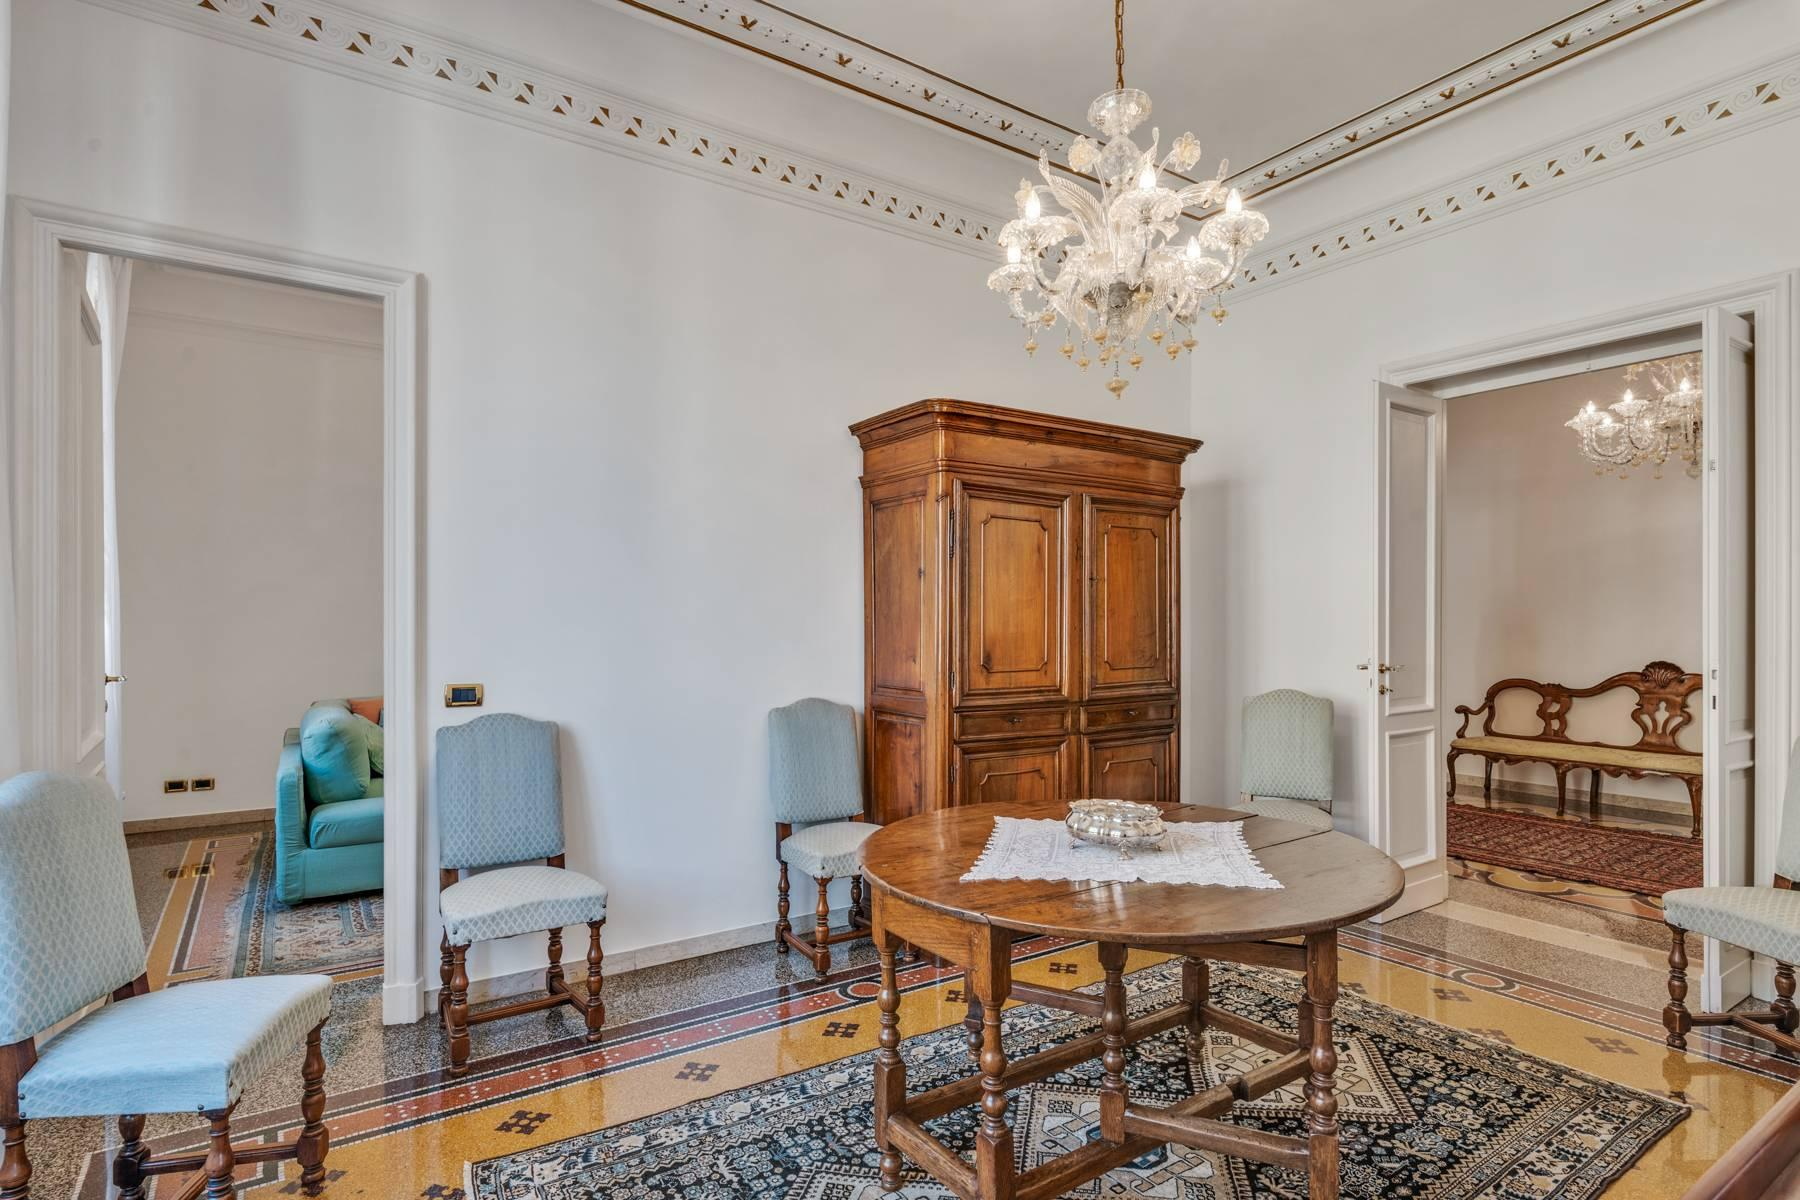 Prestigious 275 sqm apartment inside a period building in Carignano - 5